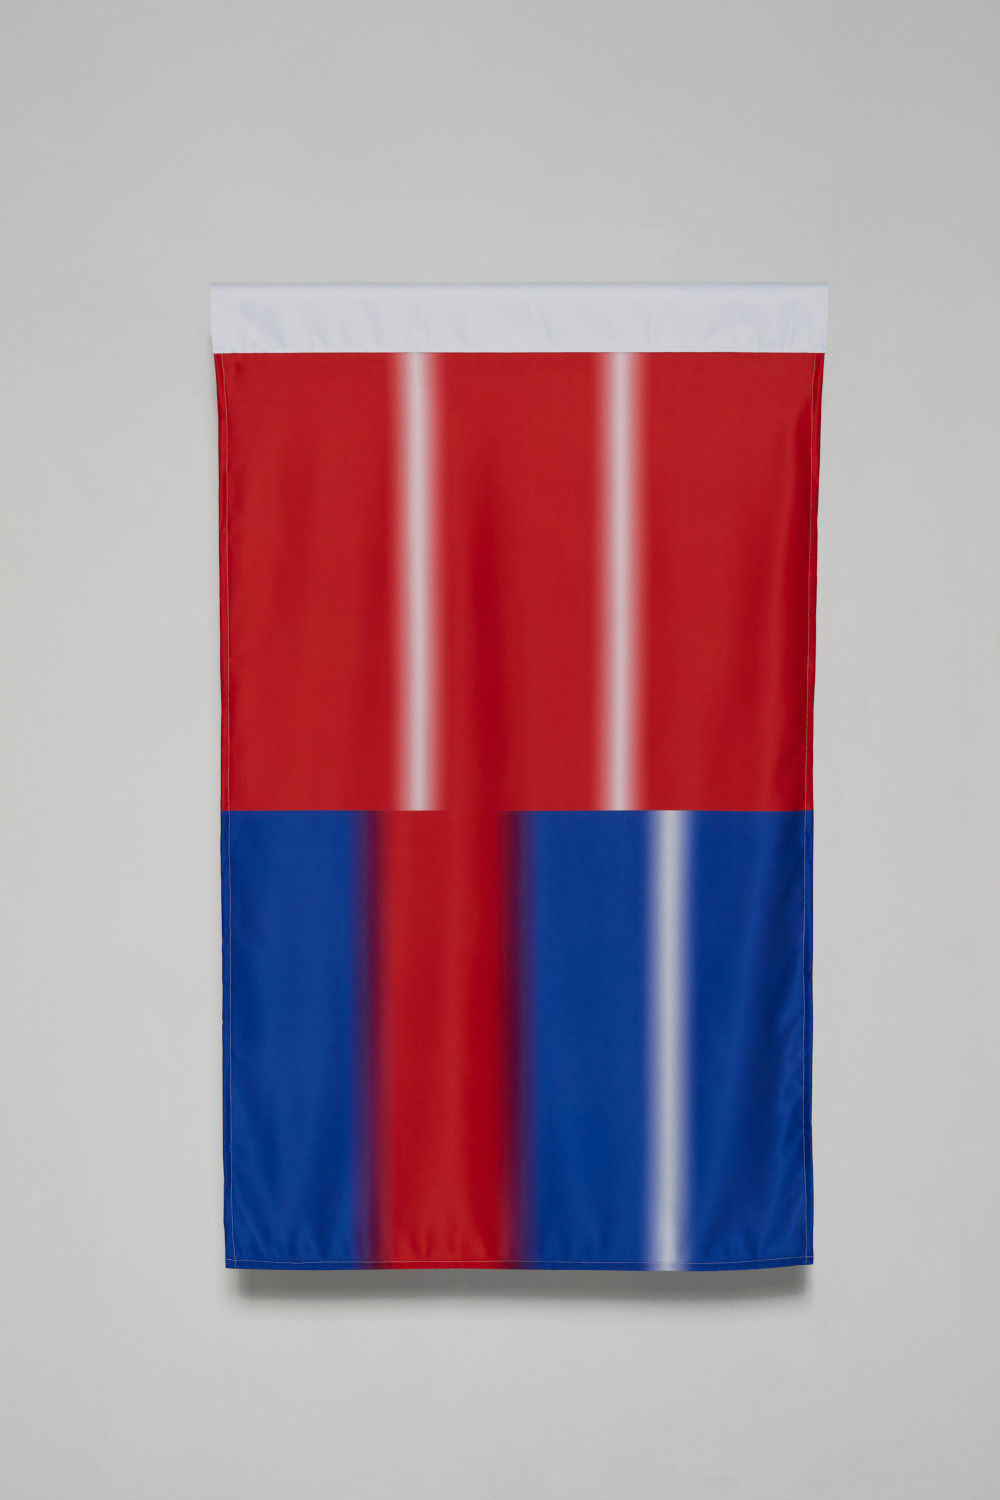 Art is only a continuation of war by other means (flags)